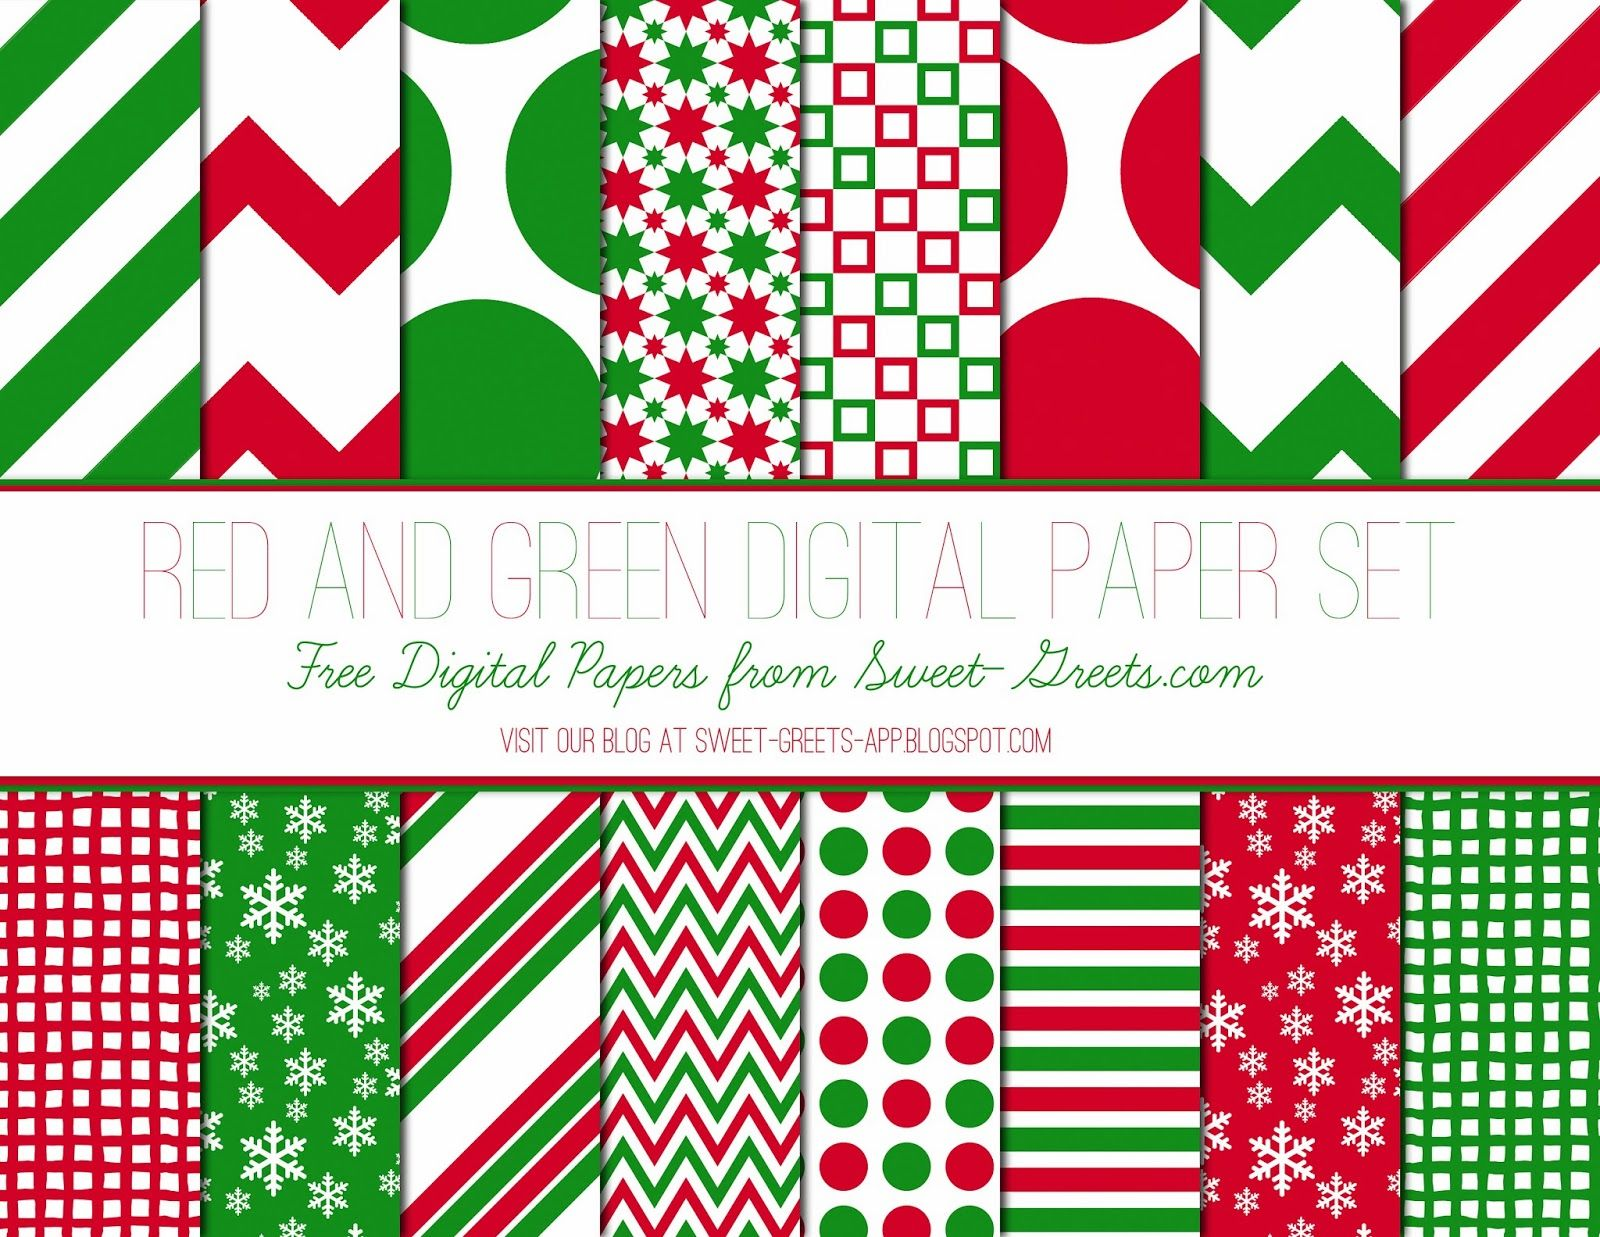 Just Peachy Designs: Free Red and Green Digital Paper Set